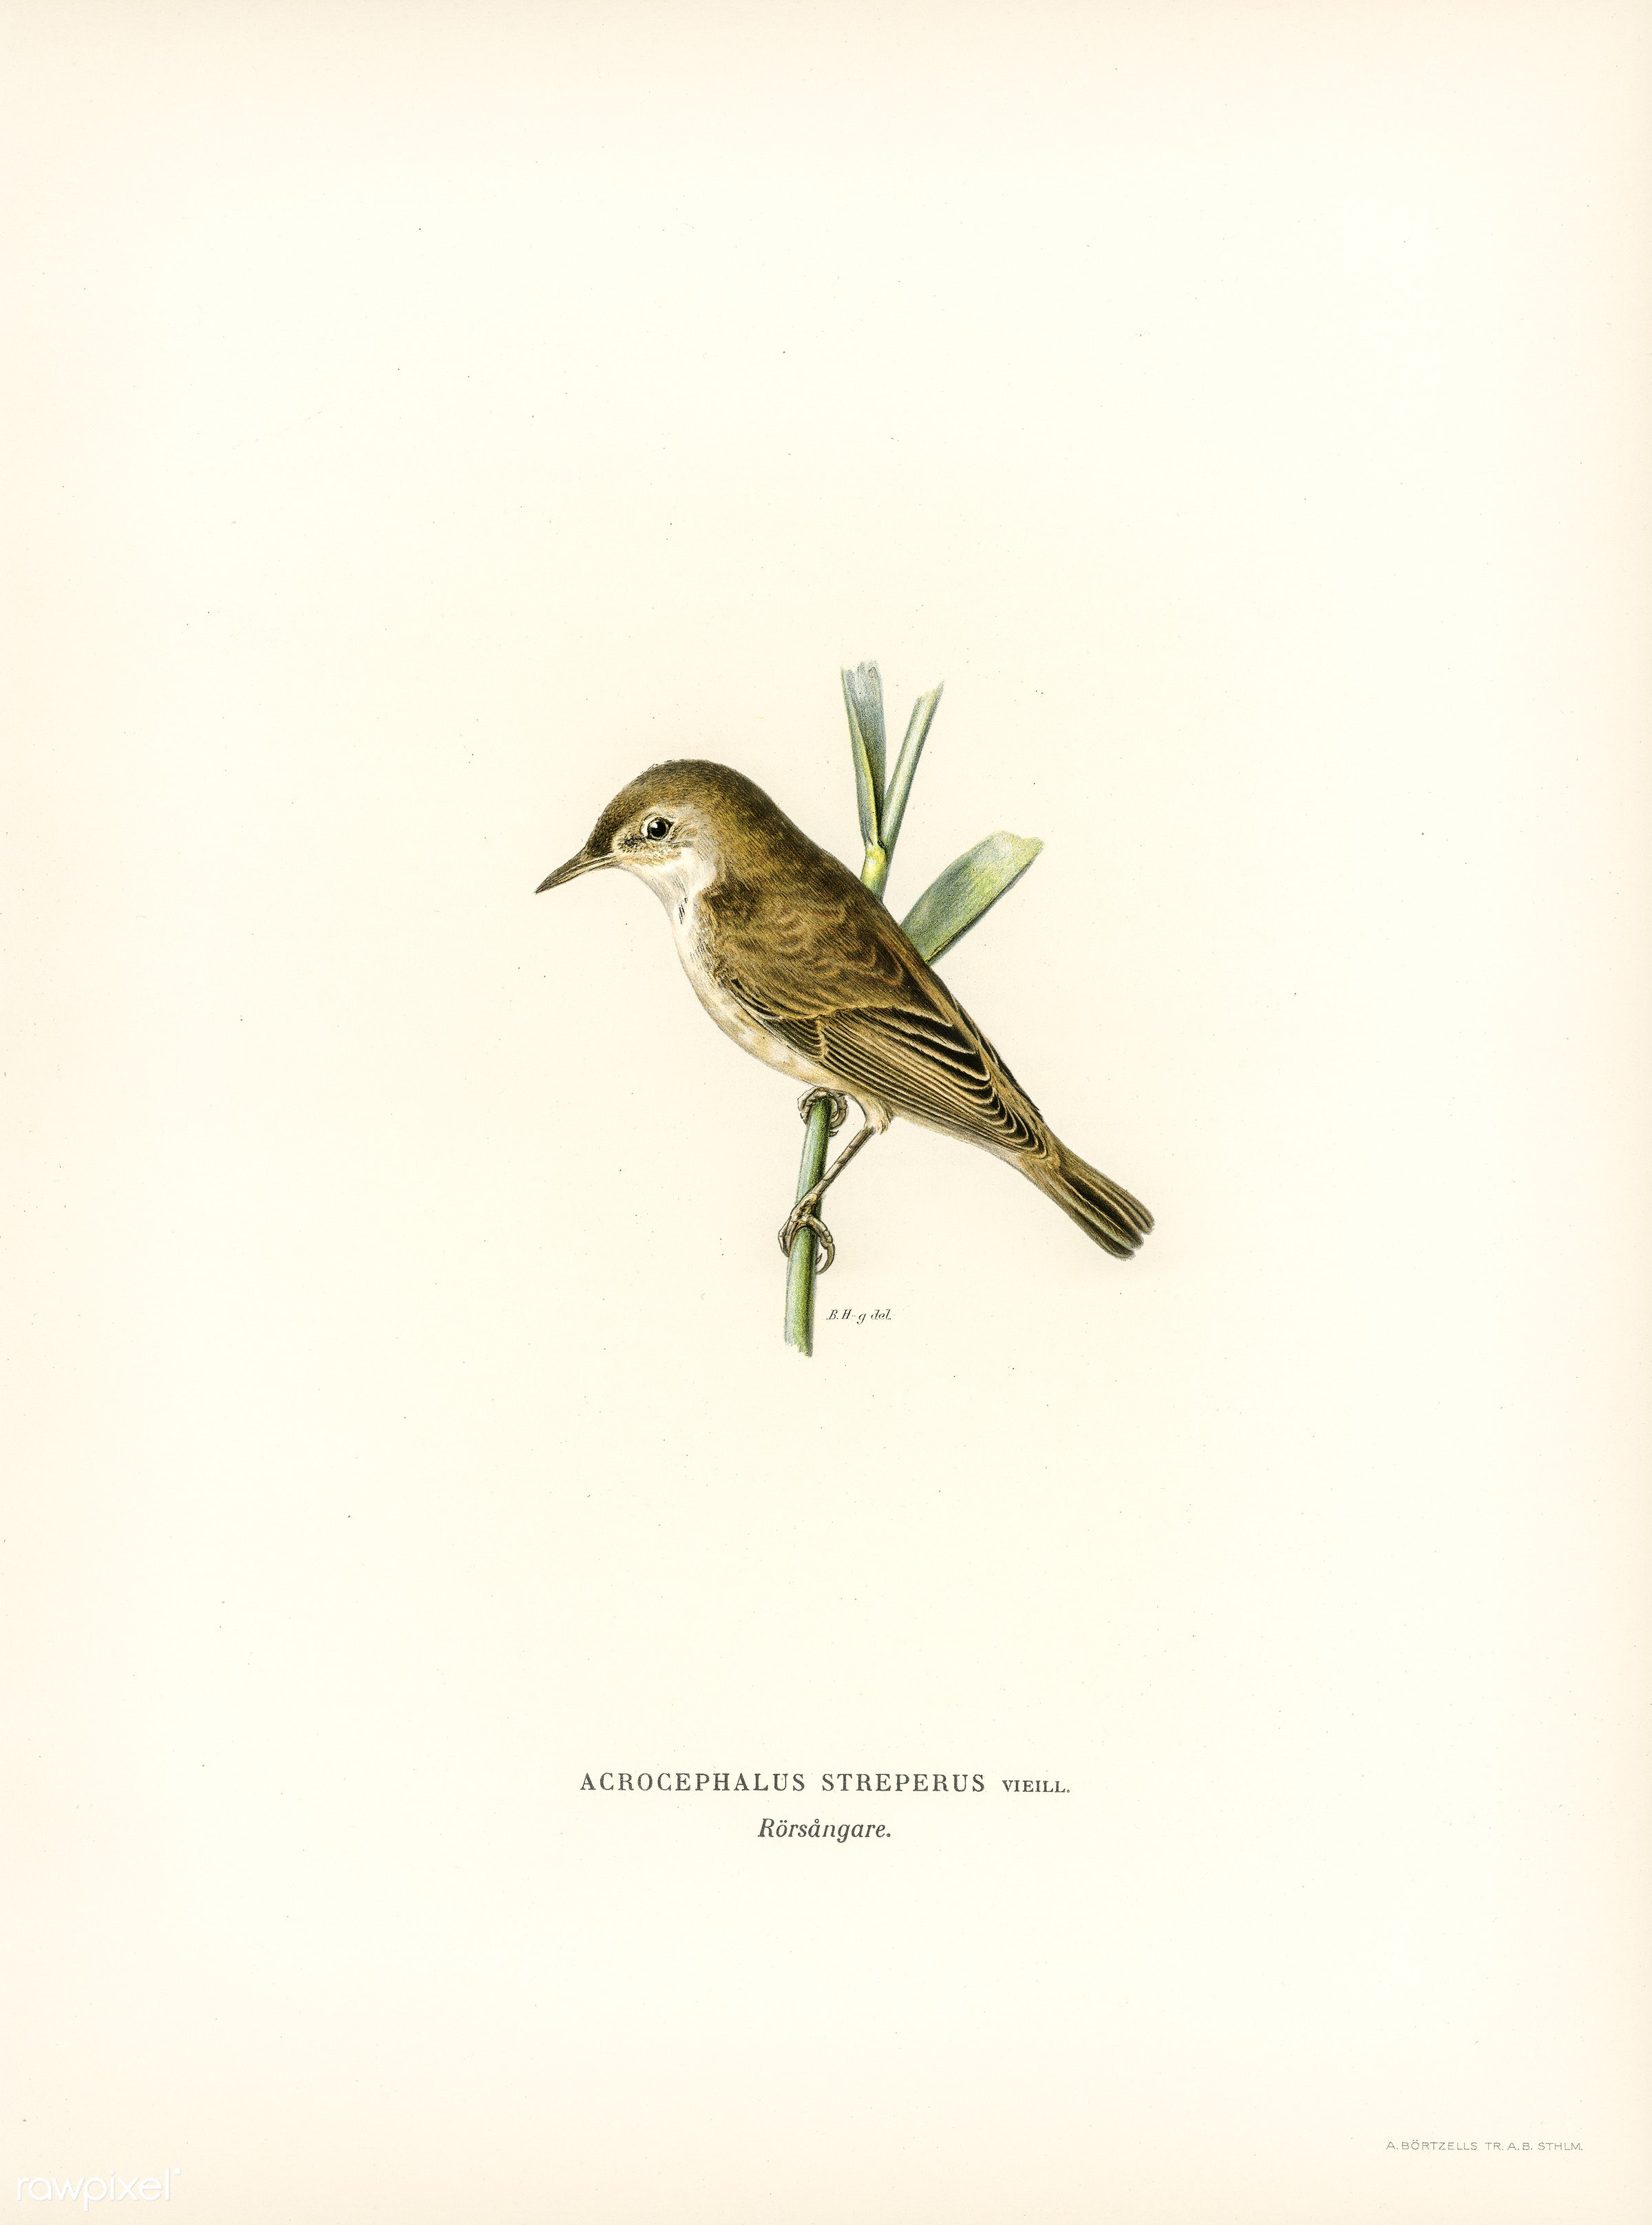 Red warbler (Acrocephalus streperus) illustrated by the von Wright brothers. Digitally enhanced from our own 1929 folio...